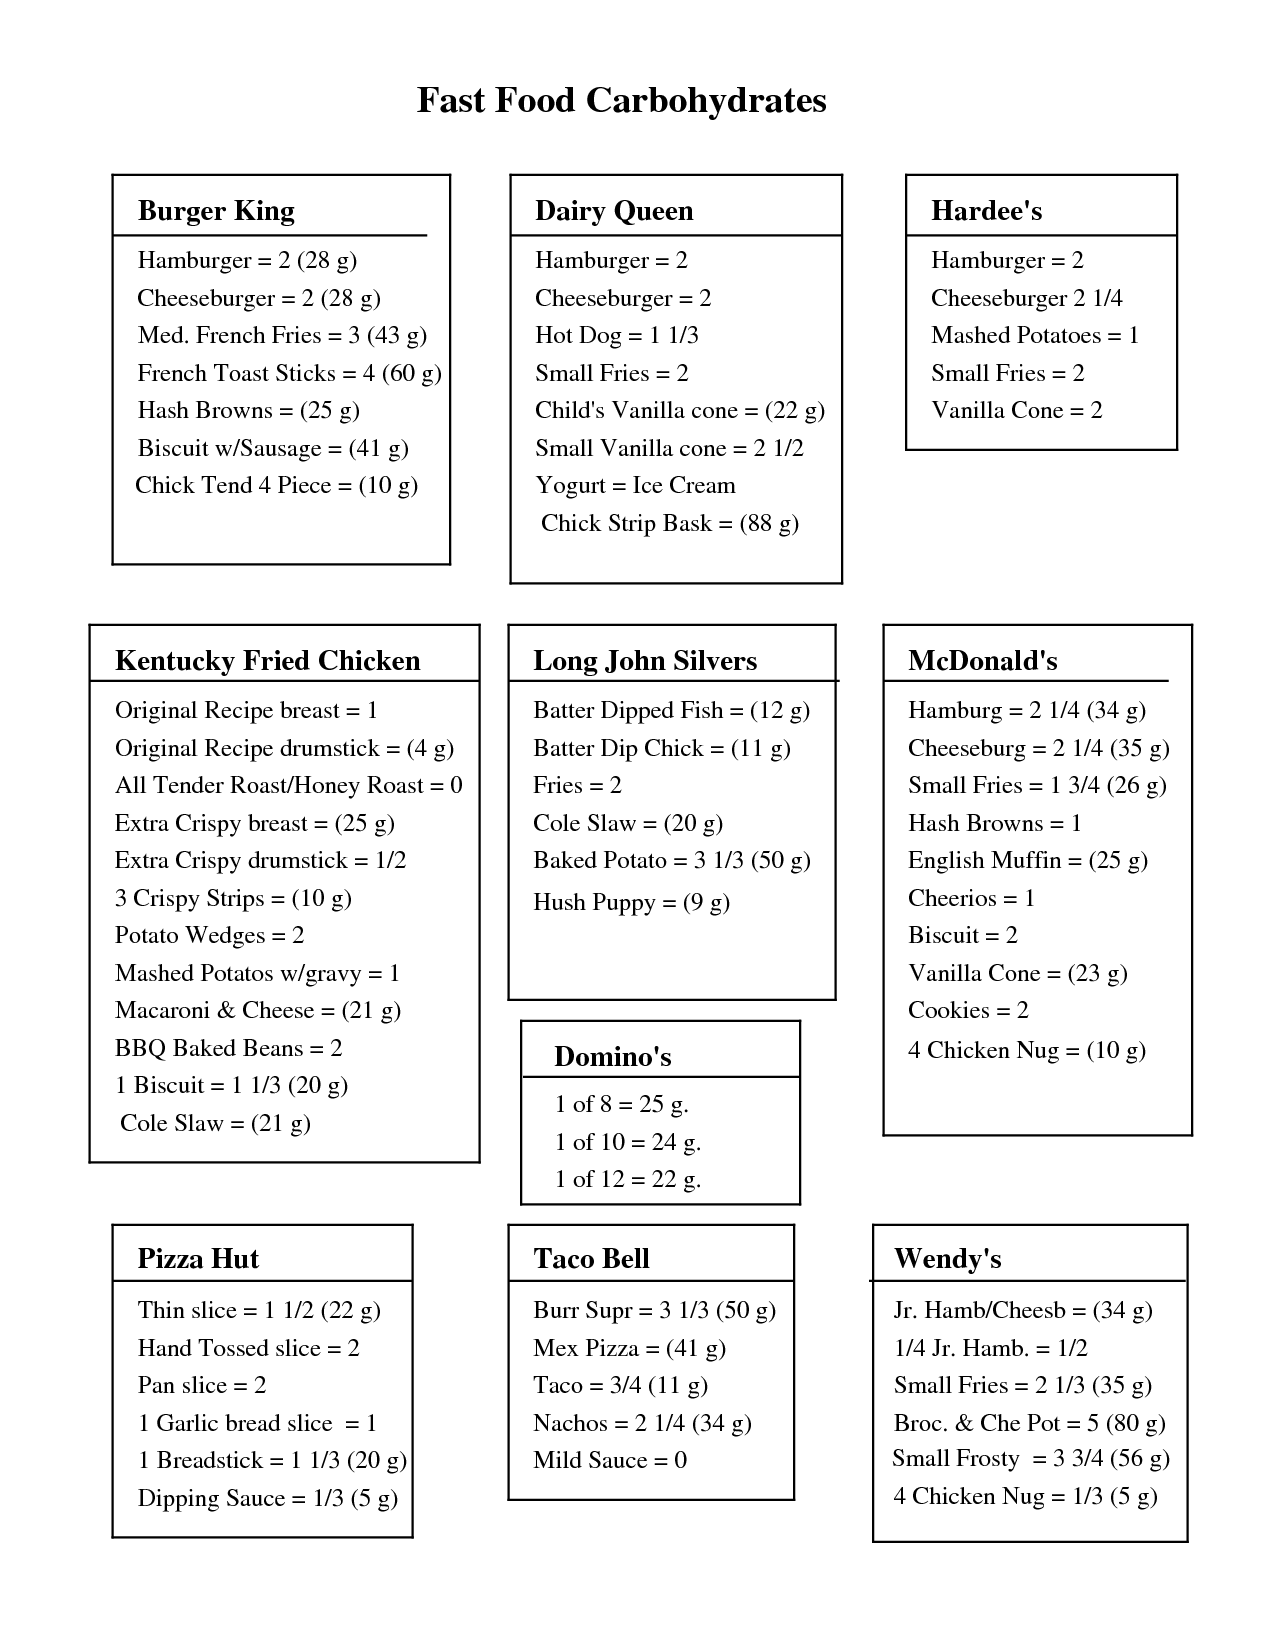 Free print carb counter chart fast foods pdf also rh pinterest